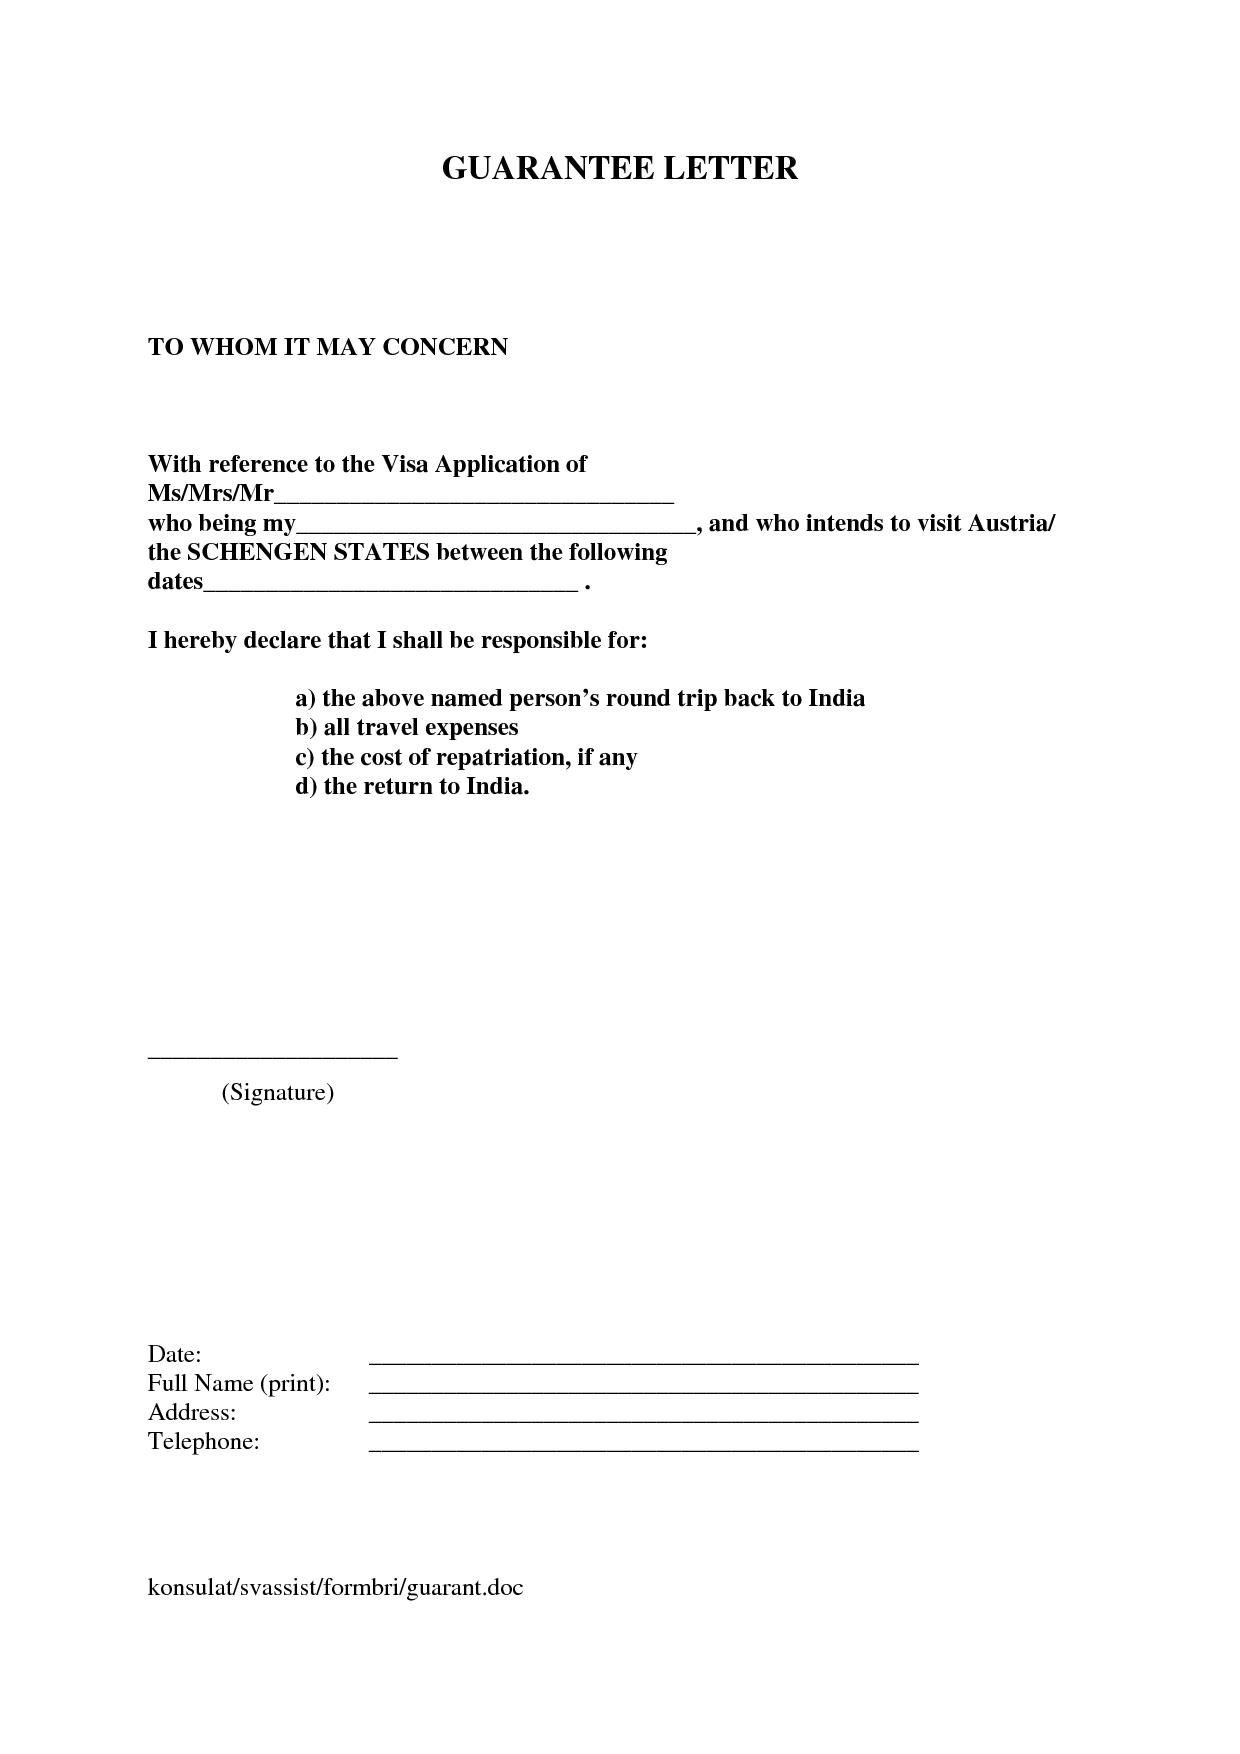 Letter financial guarantee letter for visa sample for Consul templates